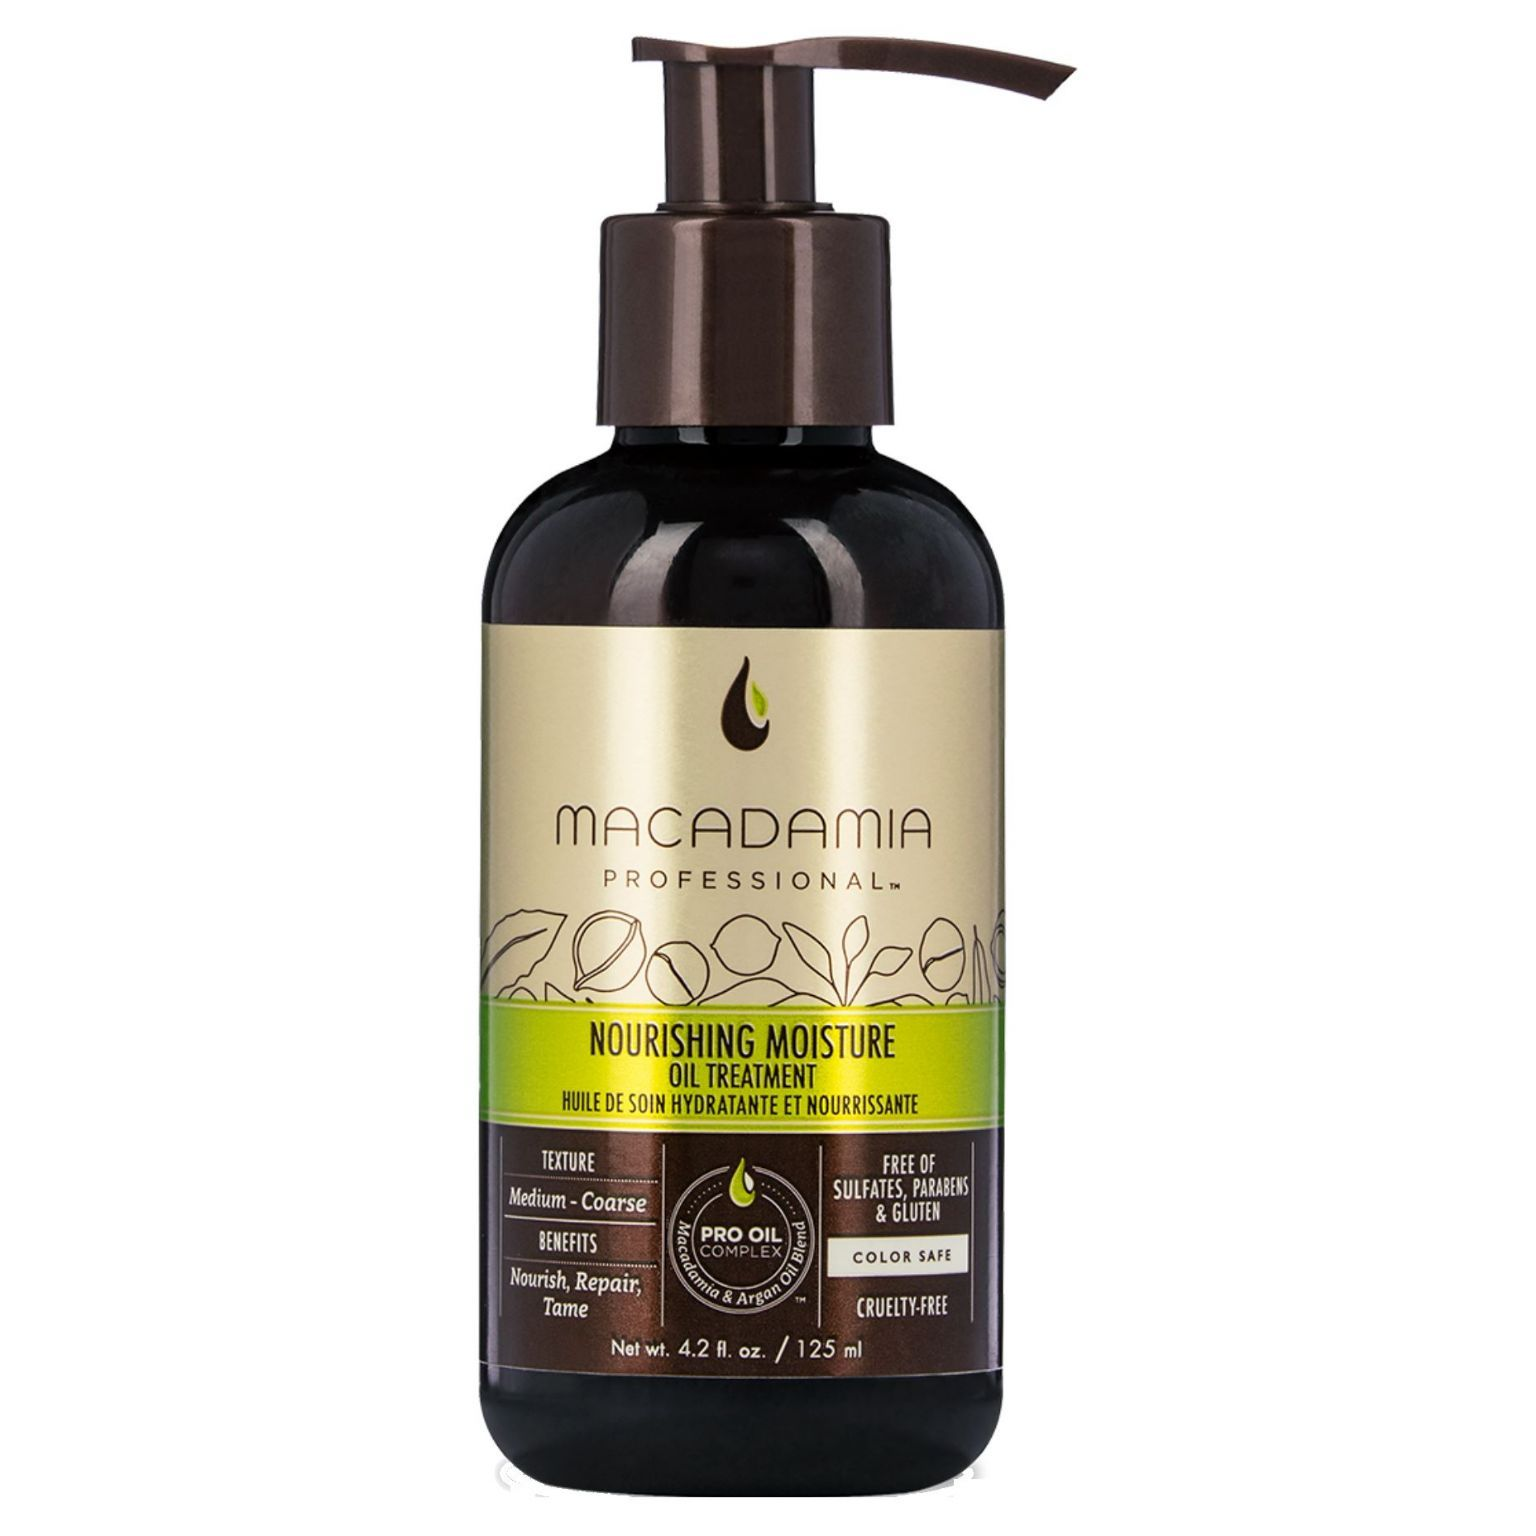 Nourishing Moisture Oil Treatment